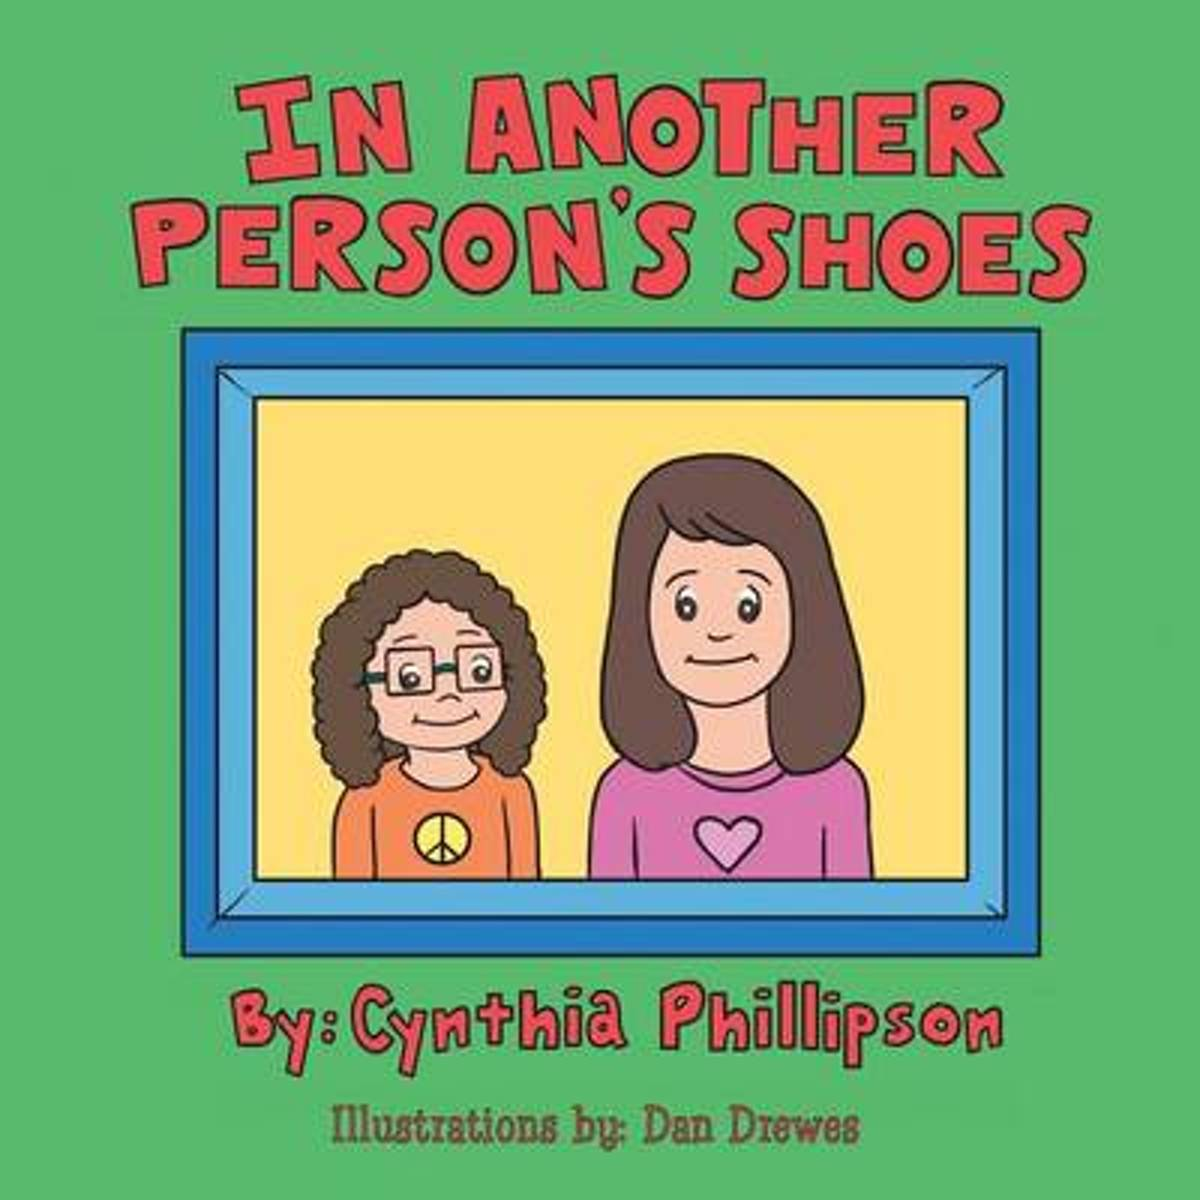 In Another Person's Shoes